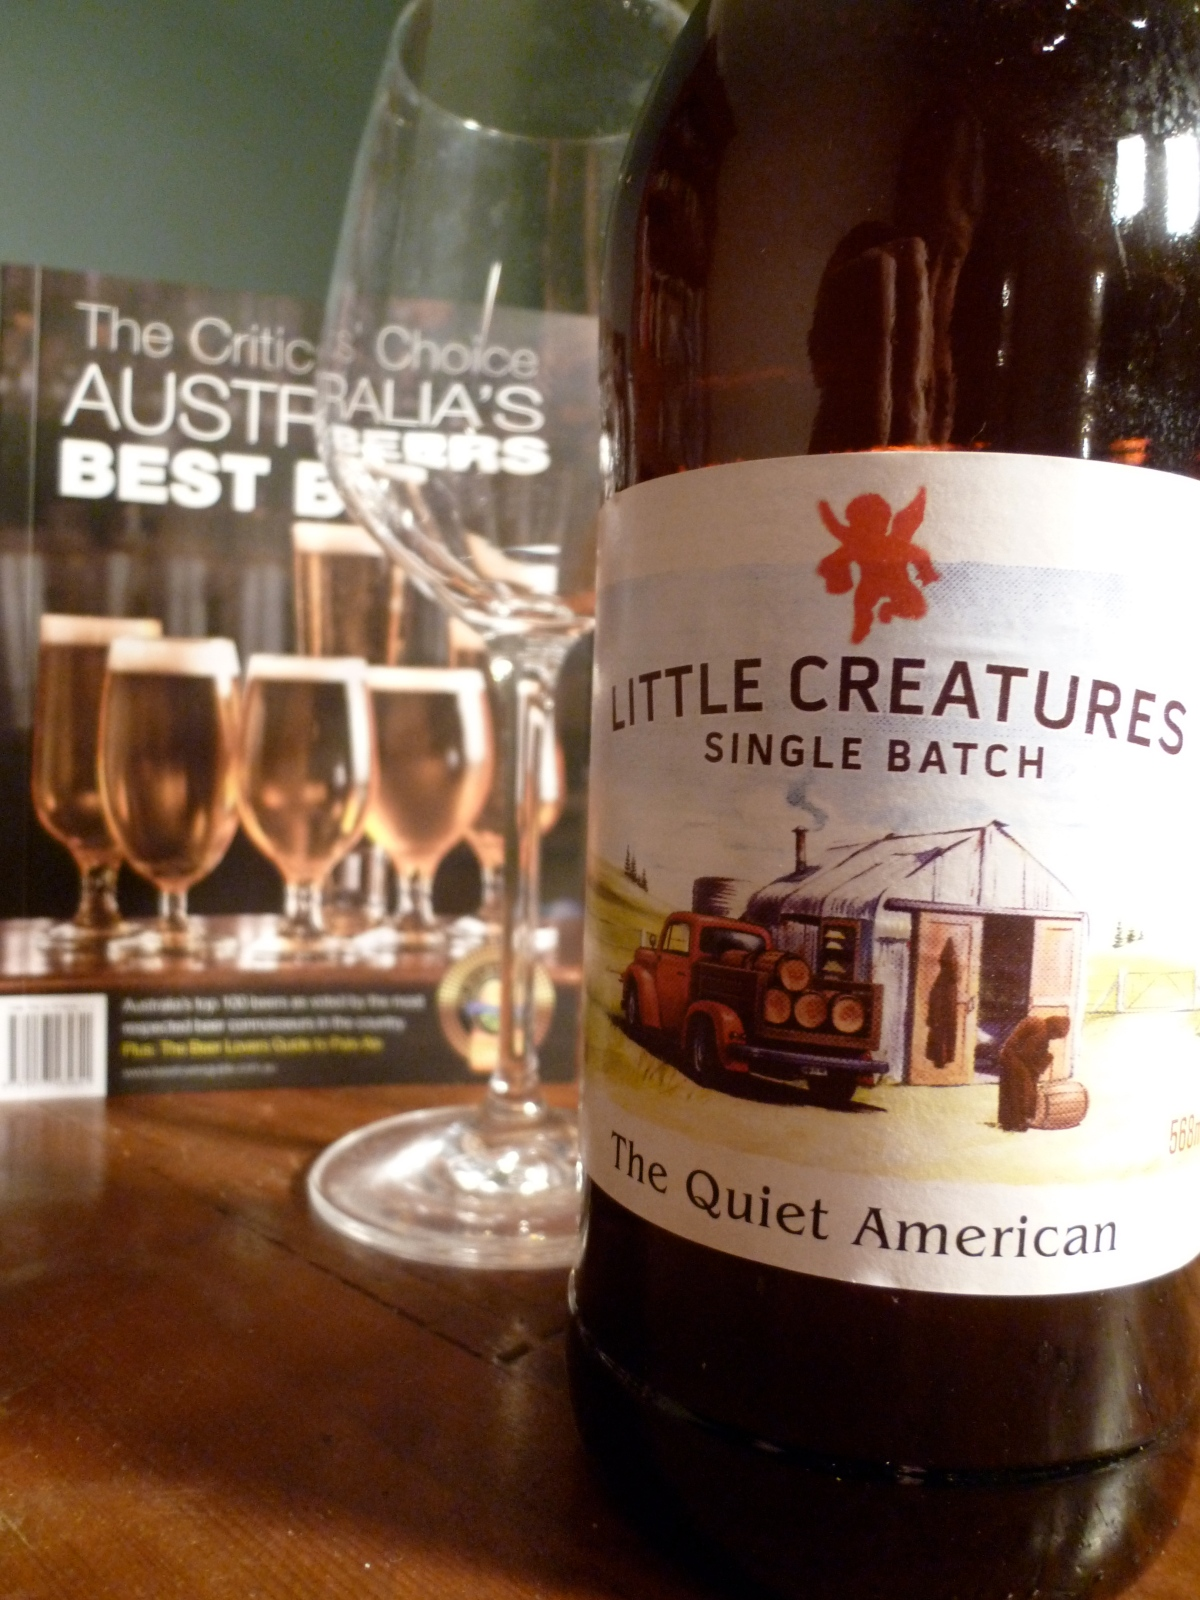 Little Creatures: The Quiet American